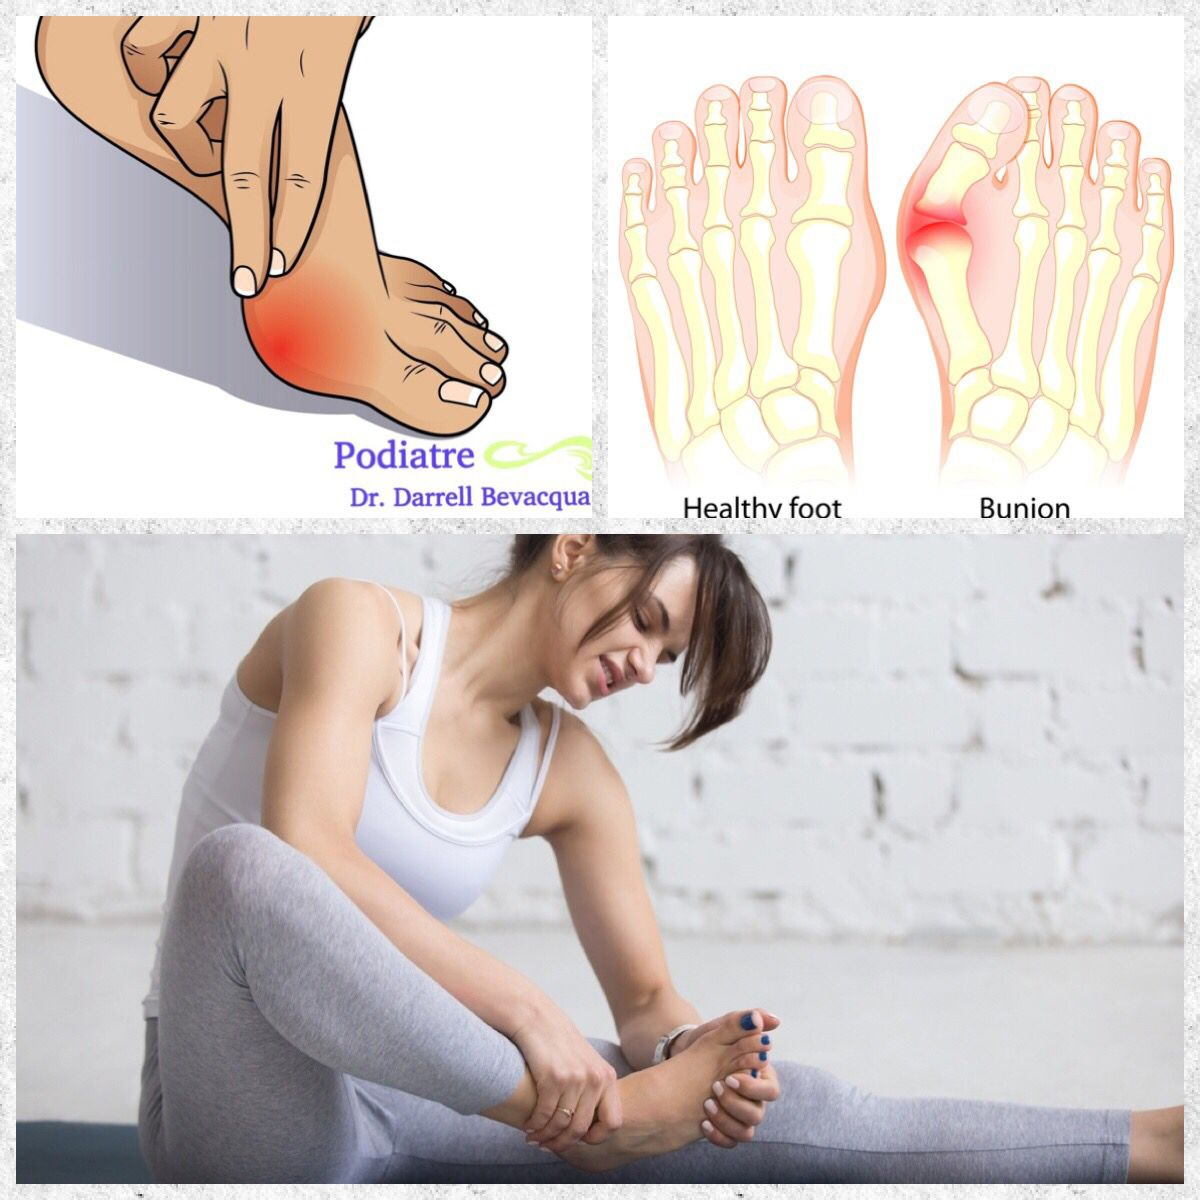 7 Ways to Treat Bunions A bunion is a deformity of the